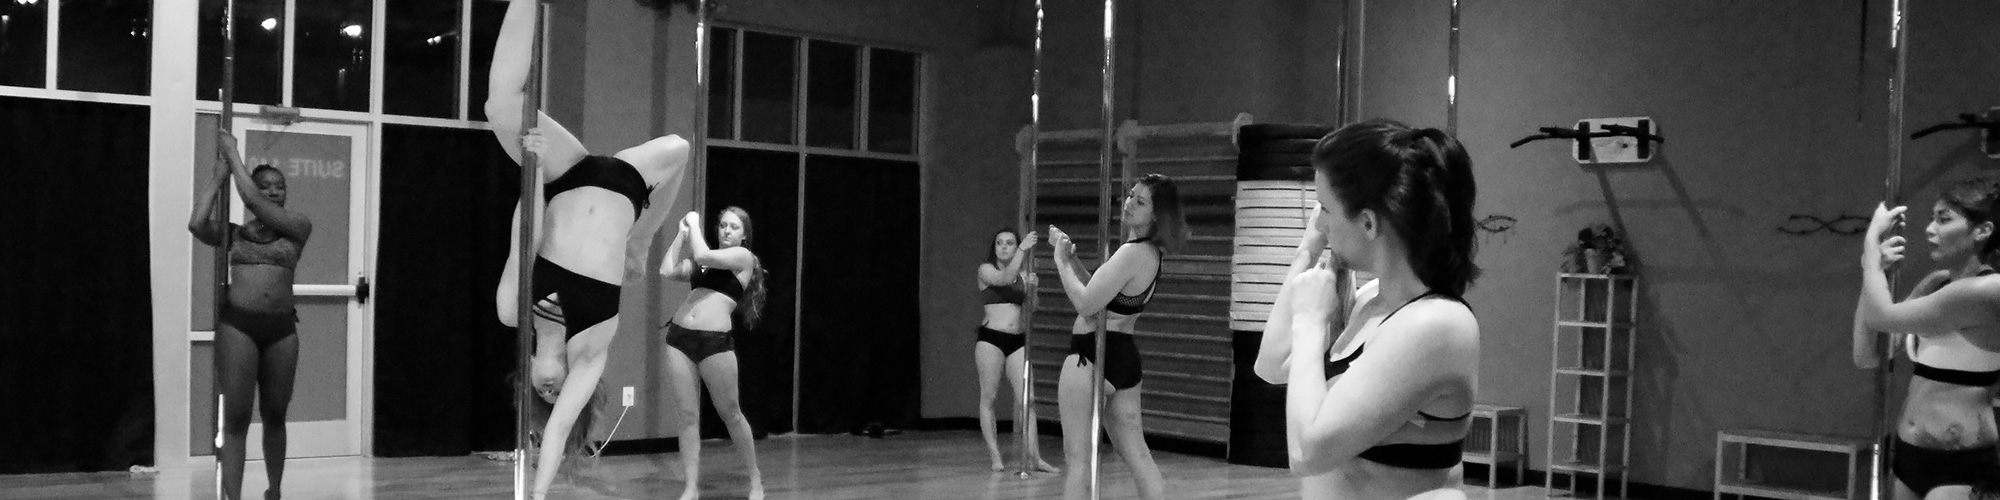 pole classes